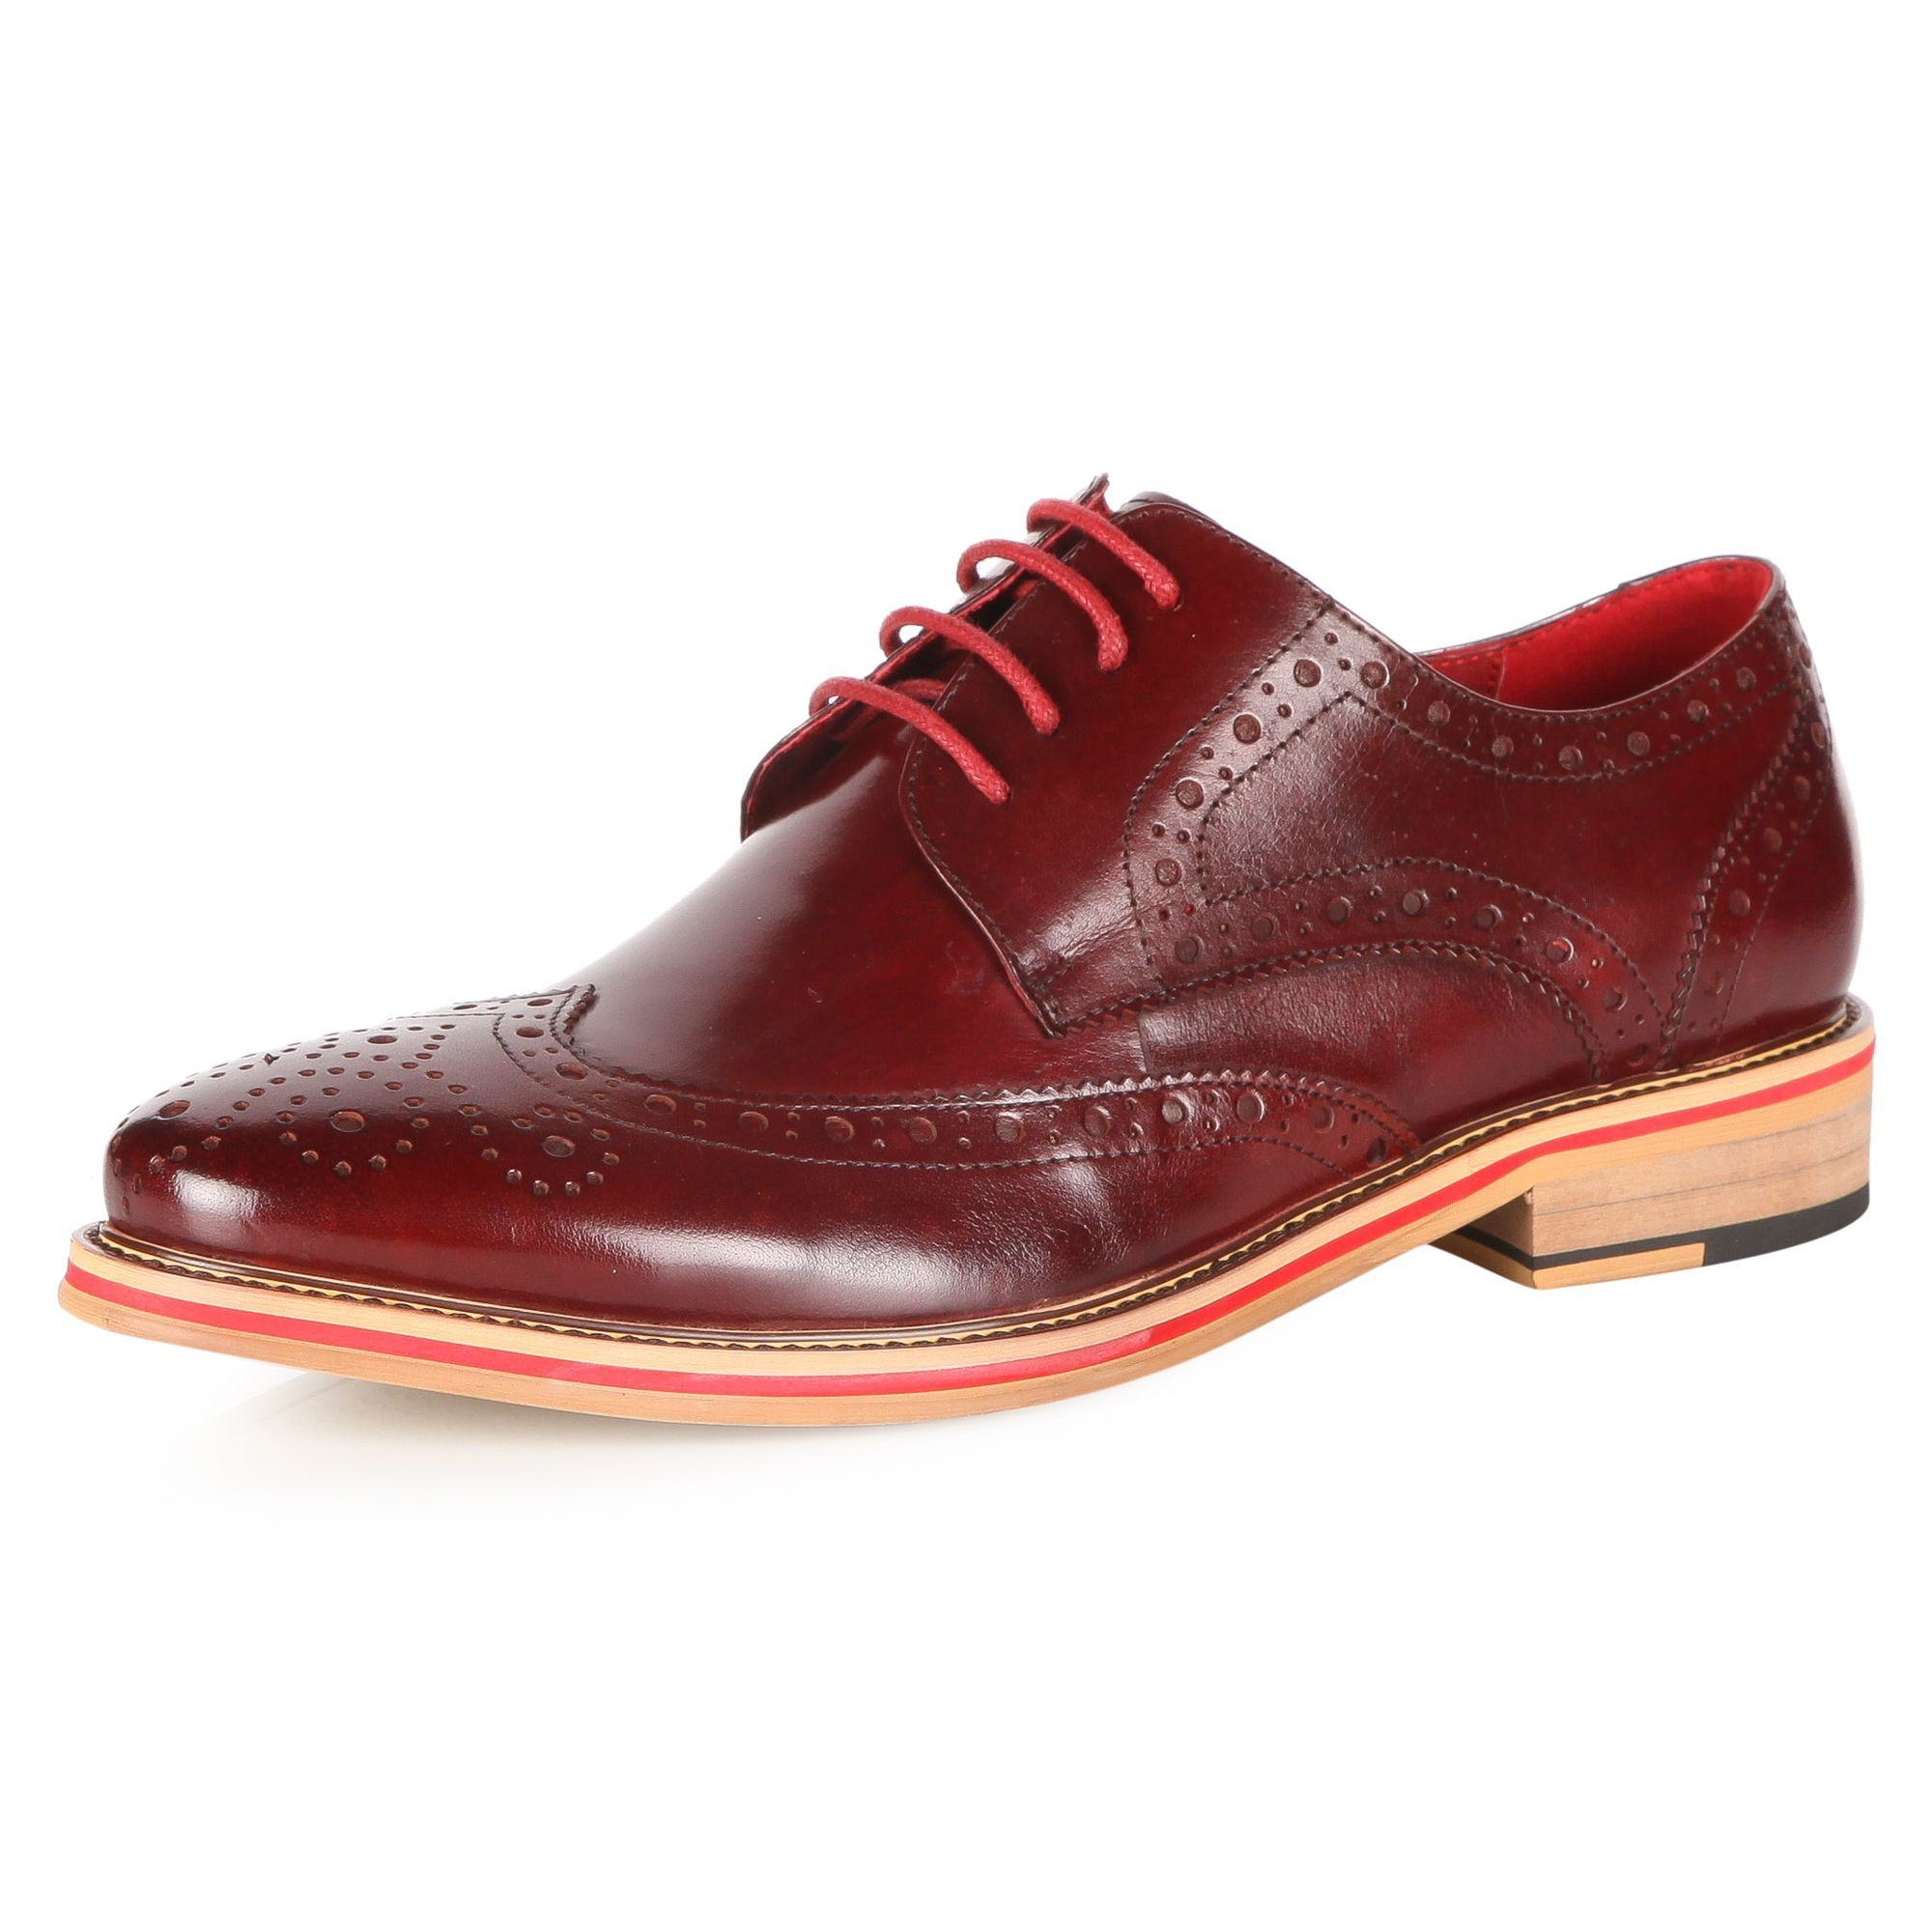 JUSTIN REECE Lace Up Brogues - Shoes - Menswear | Slaters